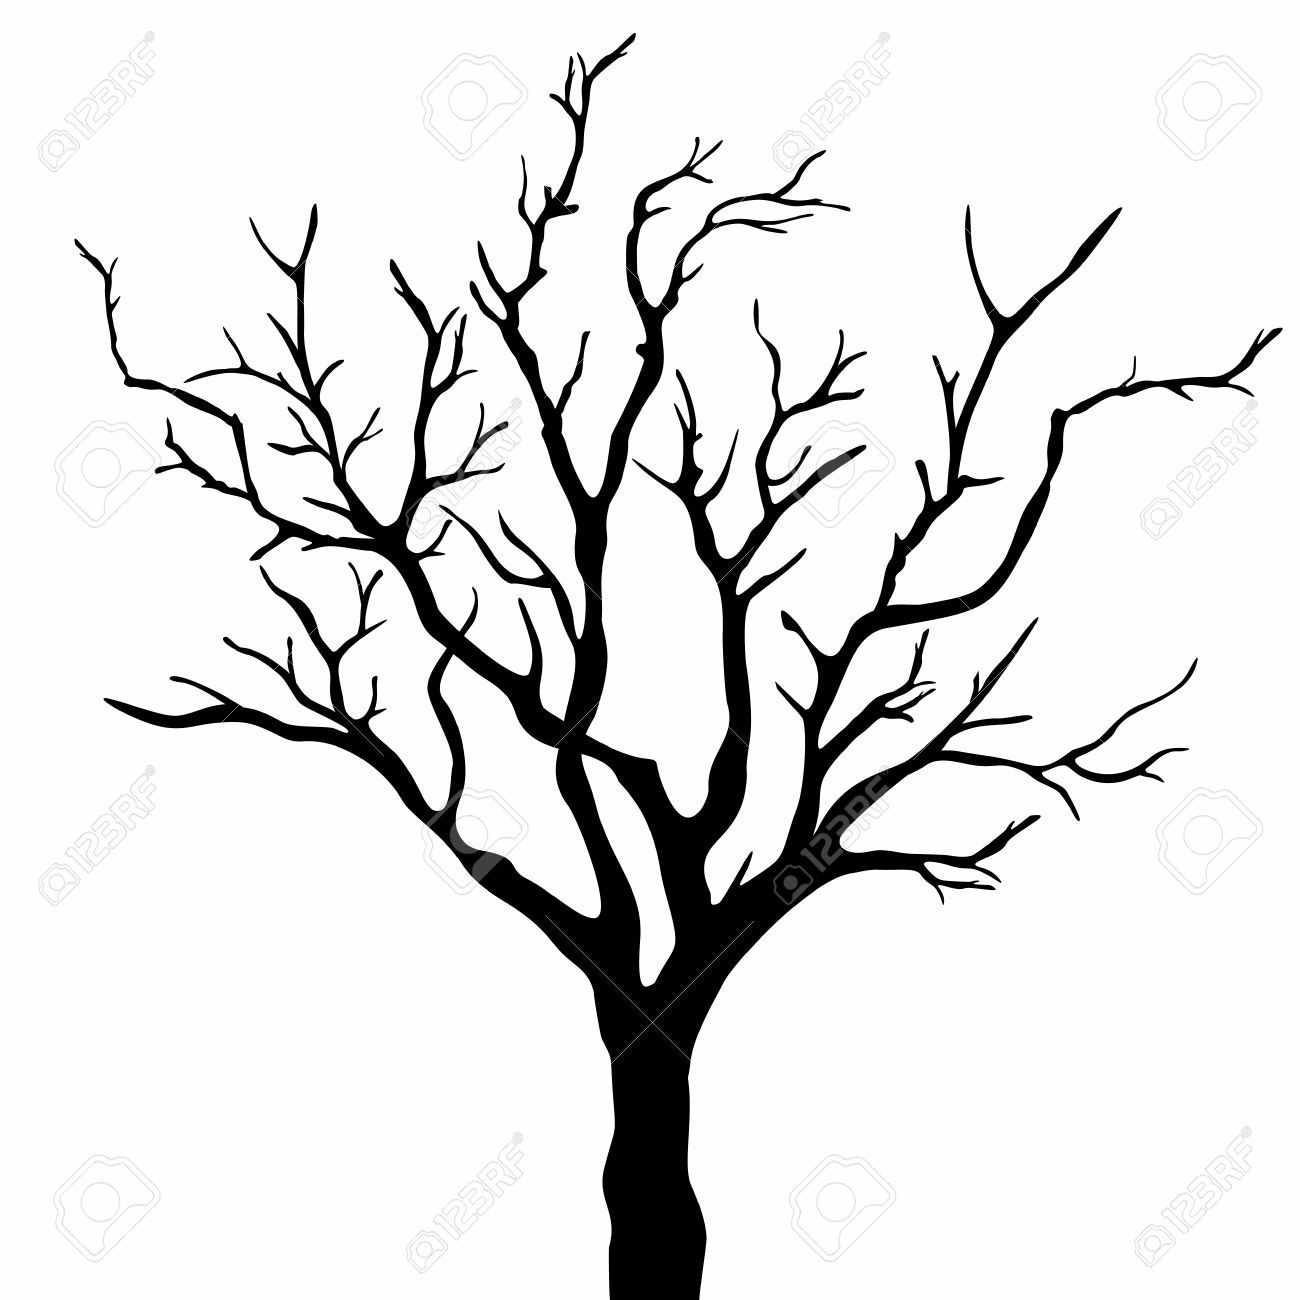 tree silhouette royalty free cliparts vectors and stock